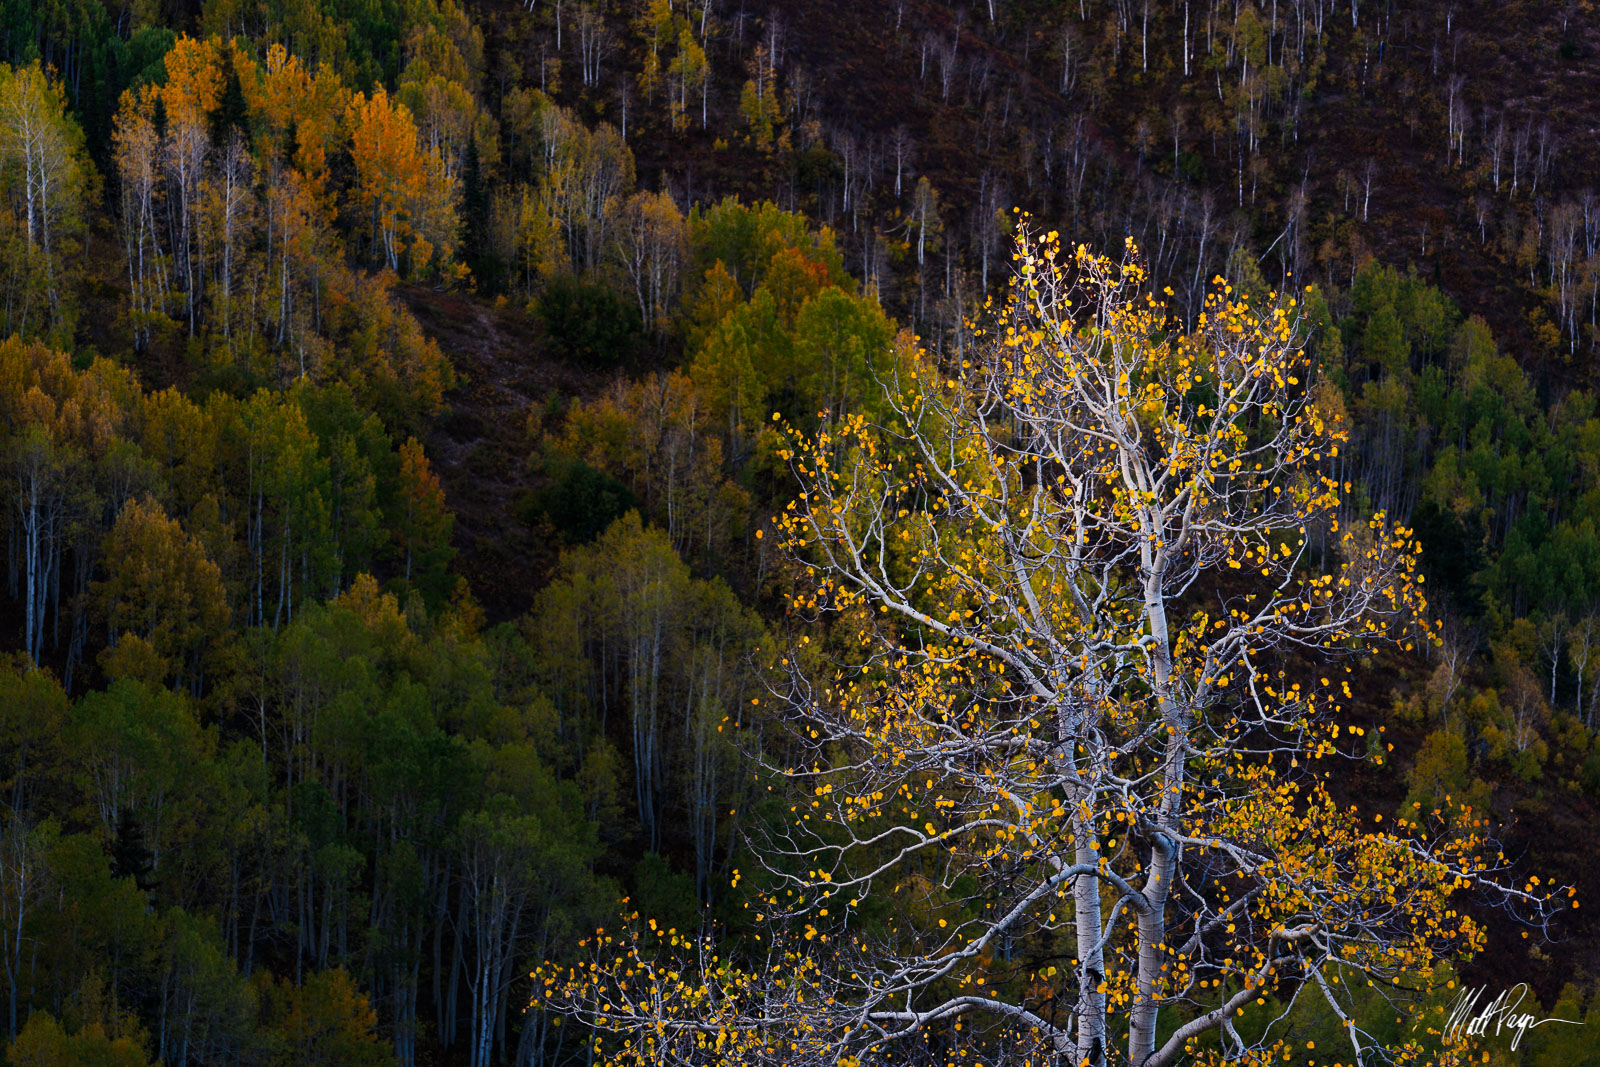 Aspen Tree, Autumn, Carbondale, Colorado, Fall, Fall Colors, Intimate Landscape, McClure Pass, Sunset, gnarled, beautiful, resiliency, photo